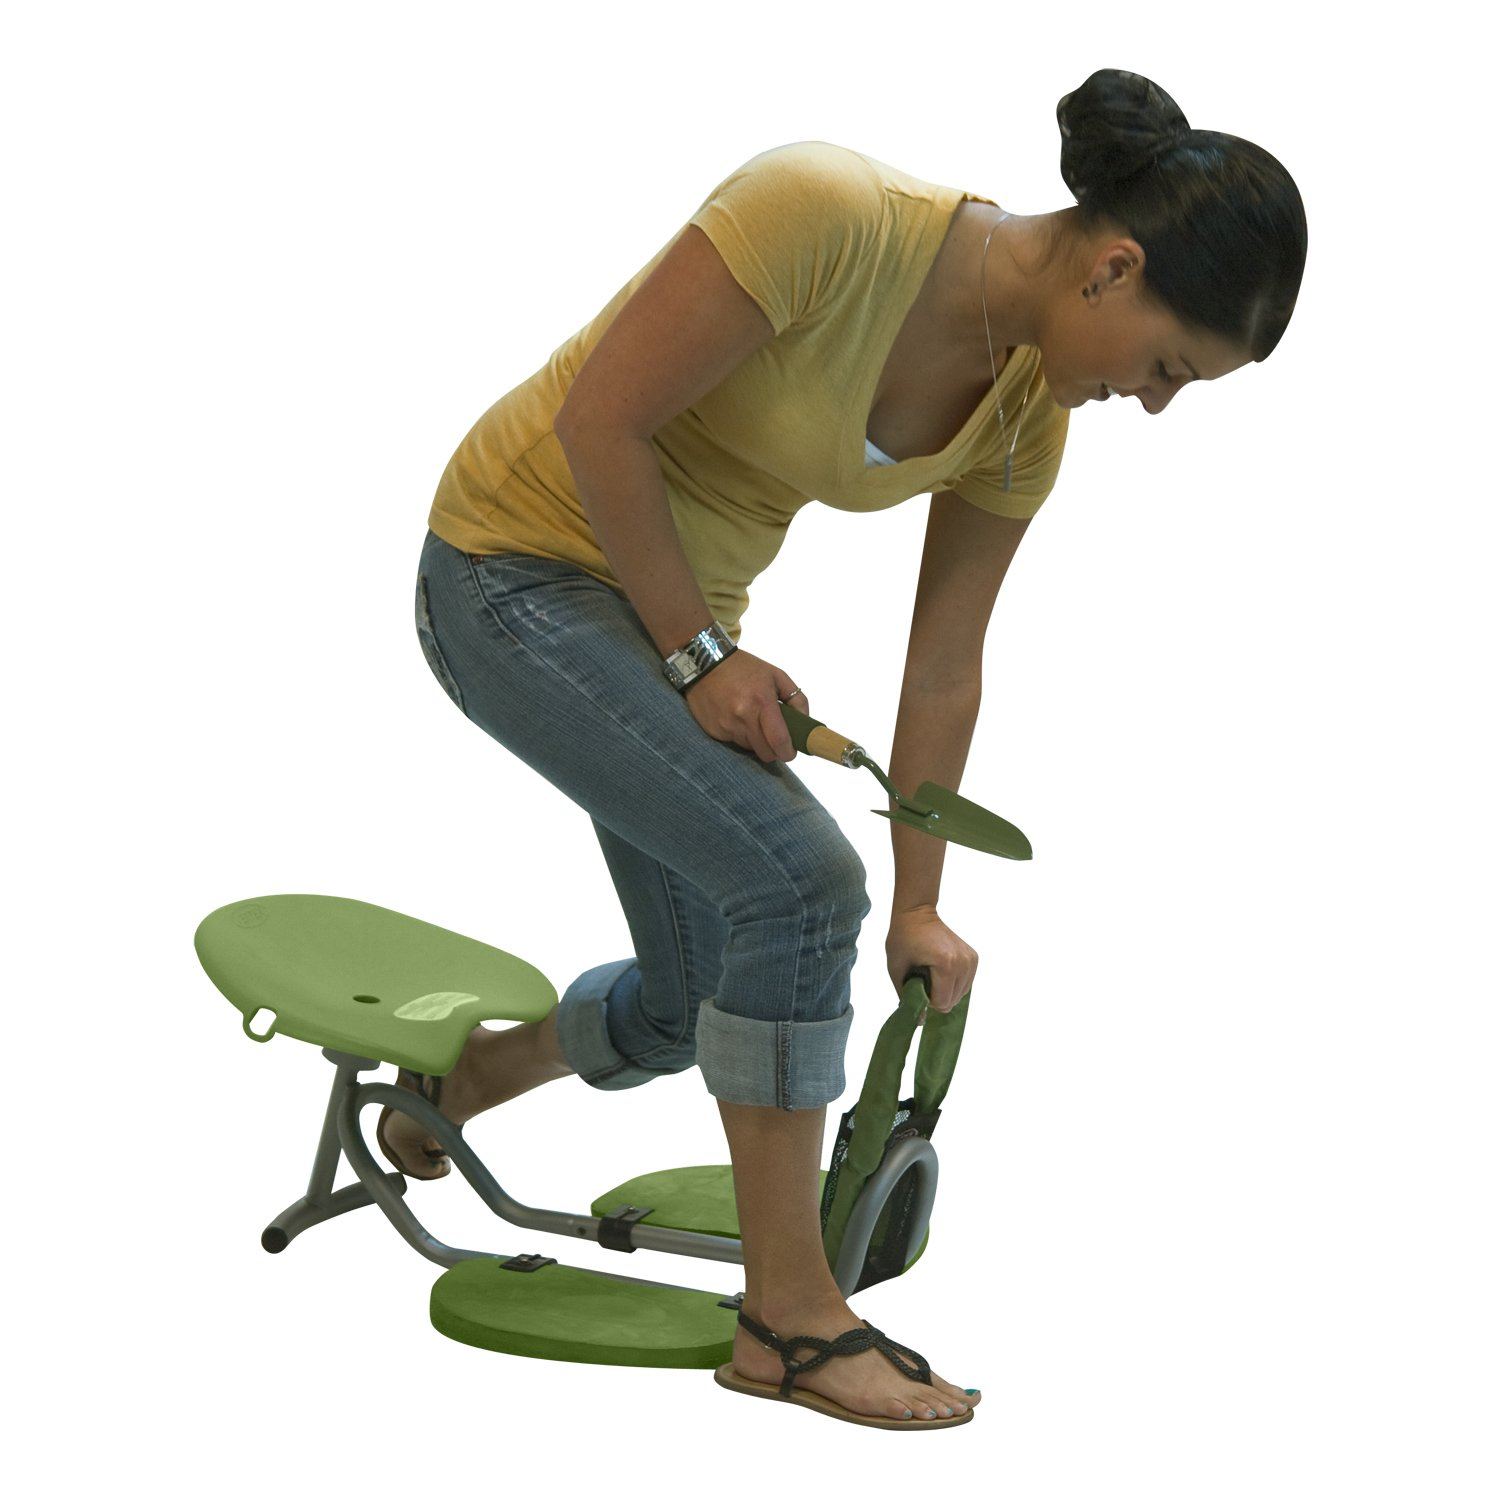 Merveilleux Amazon.com: Vertex Easy Up Kneeler Gardening Seat For Pruning/Weeding Of  Garden: Garden U0026 Outdoor